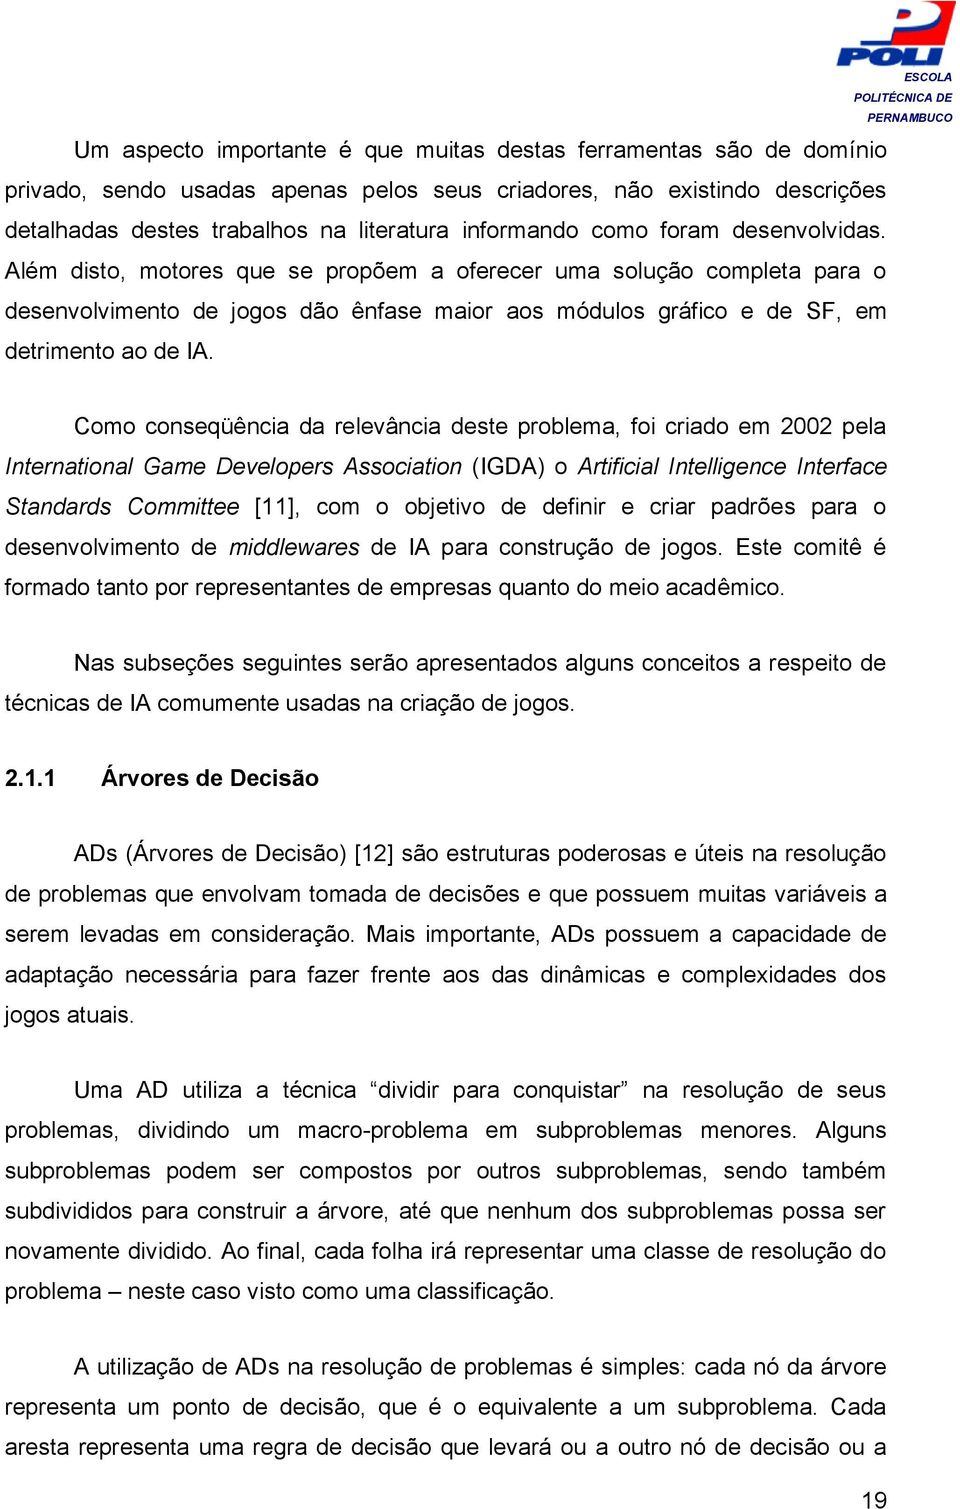 Como conseqüência da relevância deste problema, foi criado em 2002 pela International Game Developers Association (IGDA) o Artificial Intelligence Interface Standards Committee [11], com o objetivo